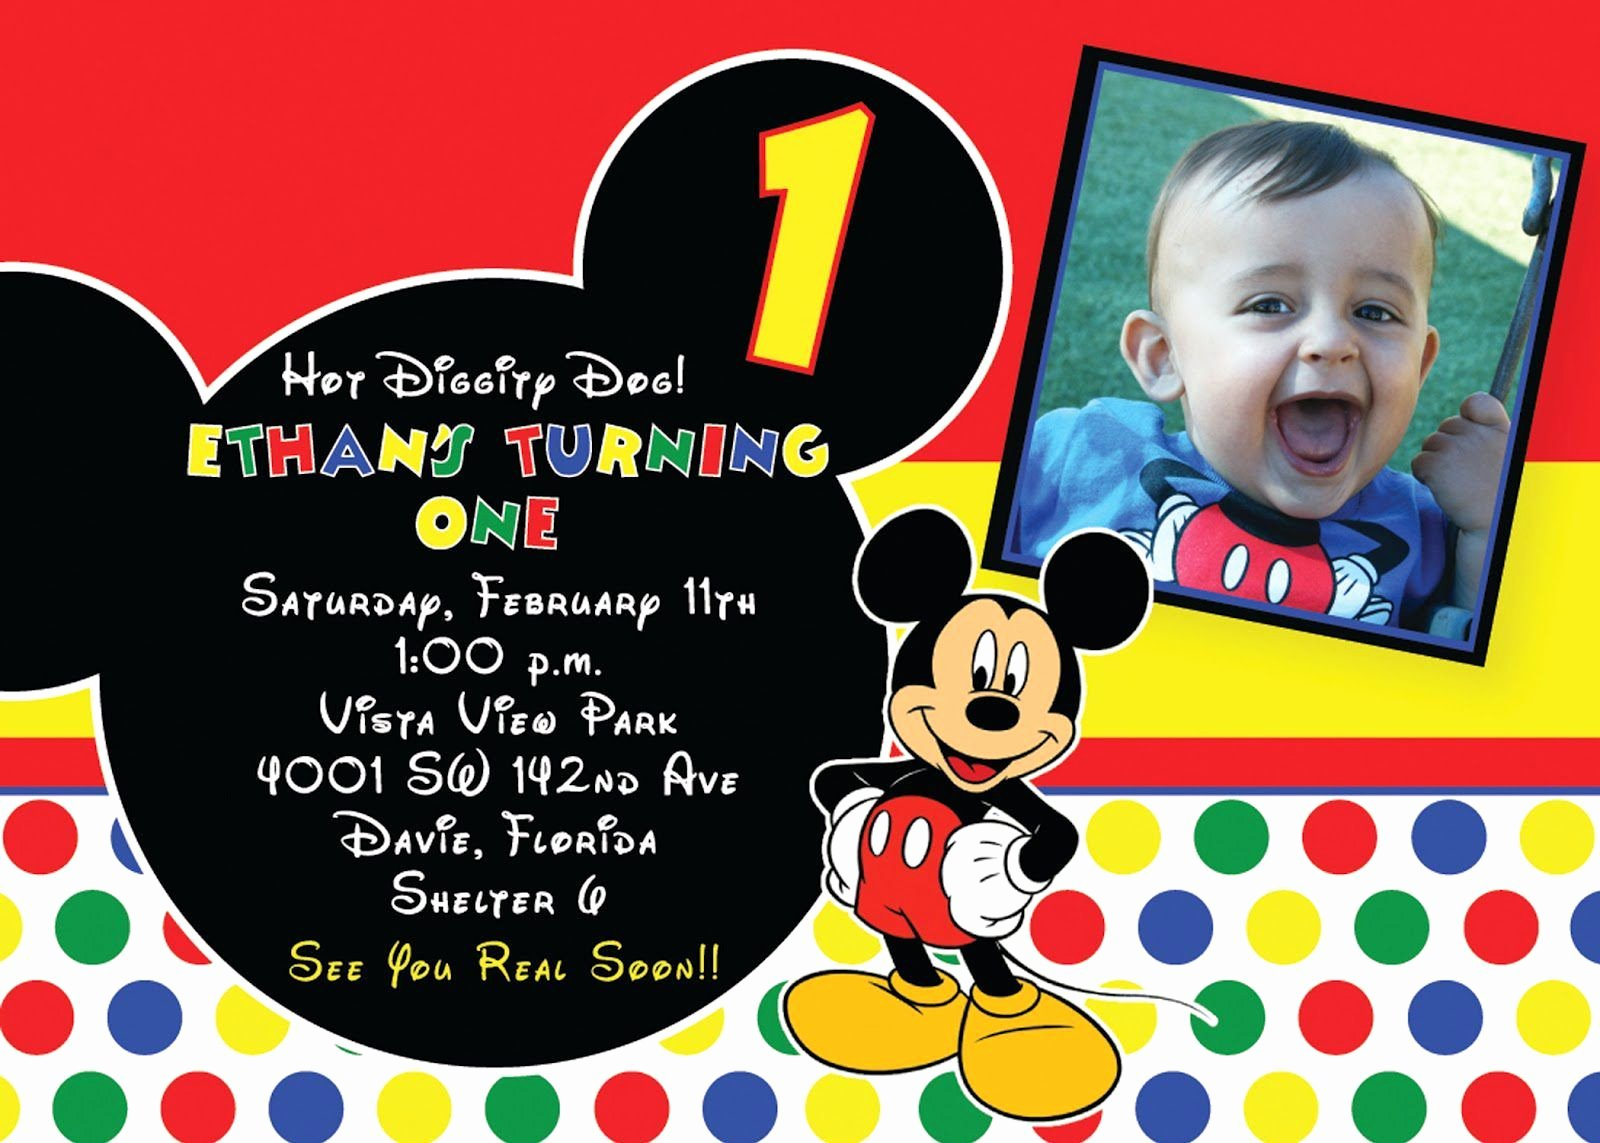 Minnie Mouse Invitation Maker Fresh Mickey Mouse Birthday Invitation Card Maker